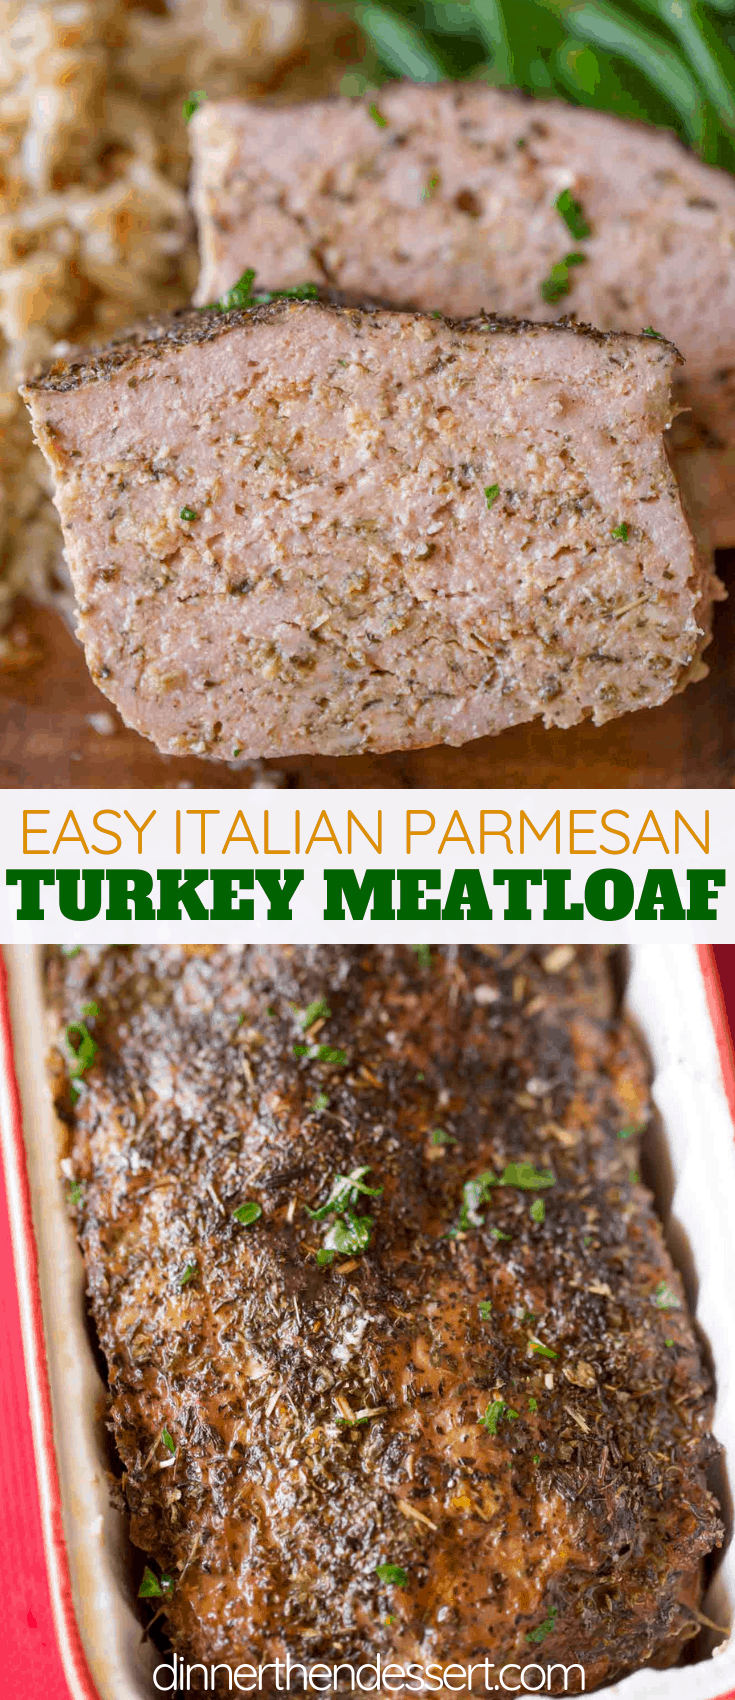 Turkey Meatloaf collage